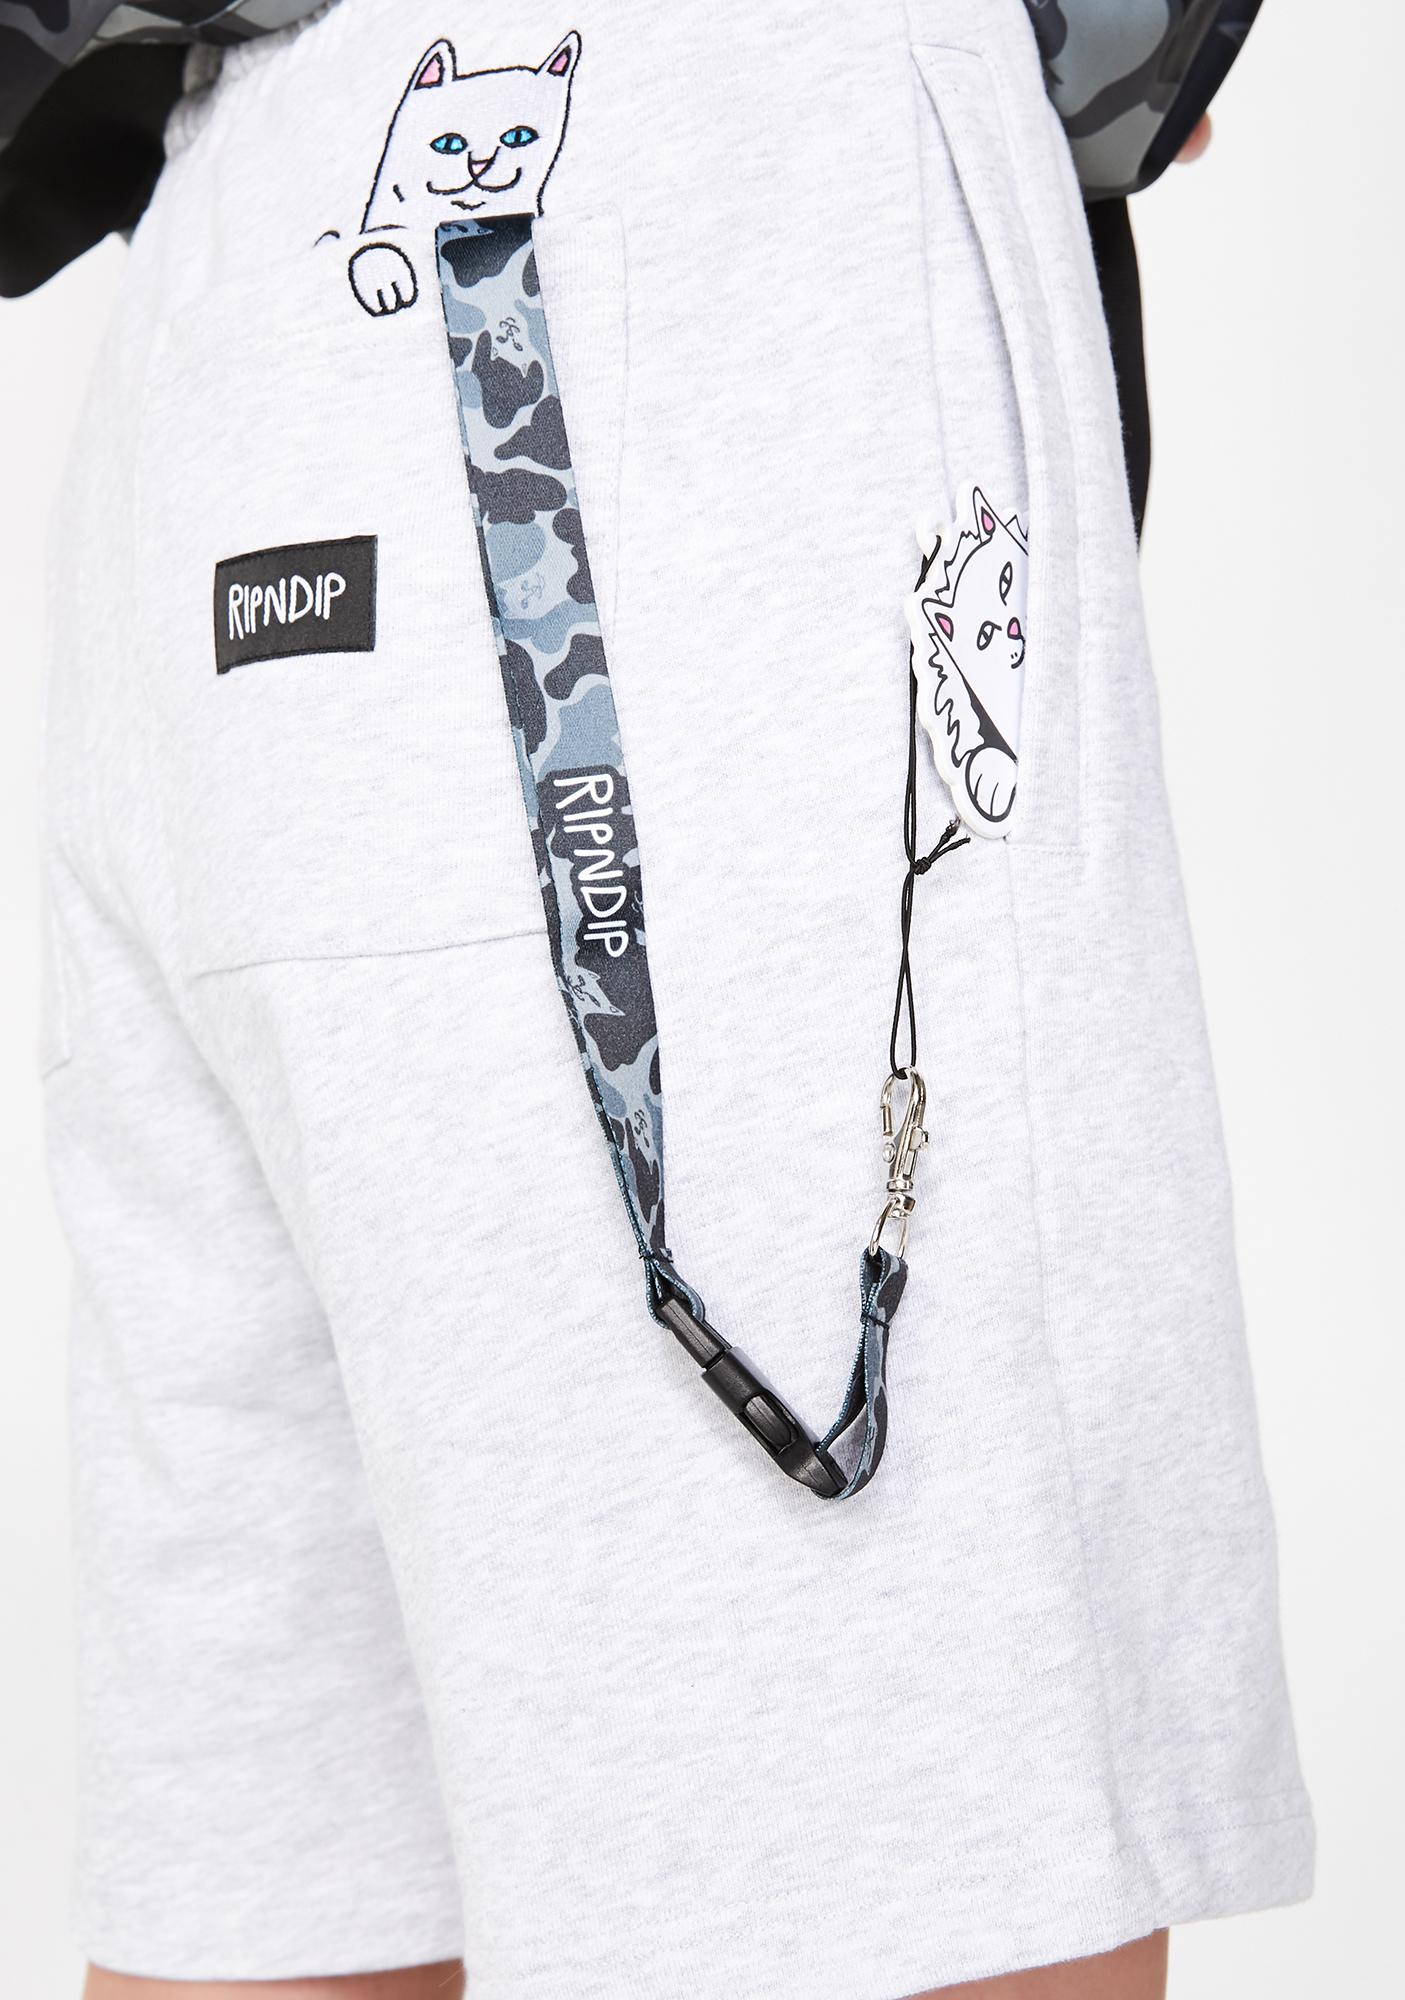 Blackout Nerm Camo Lanyard by Ripndip